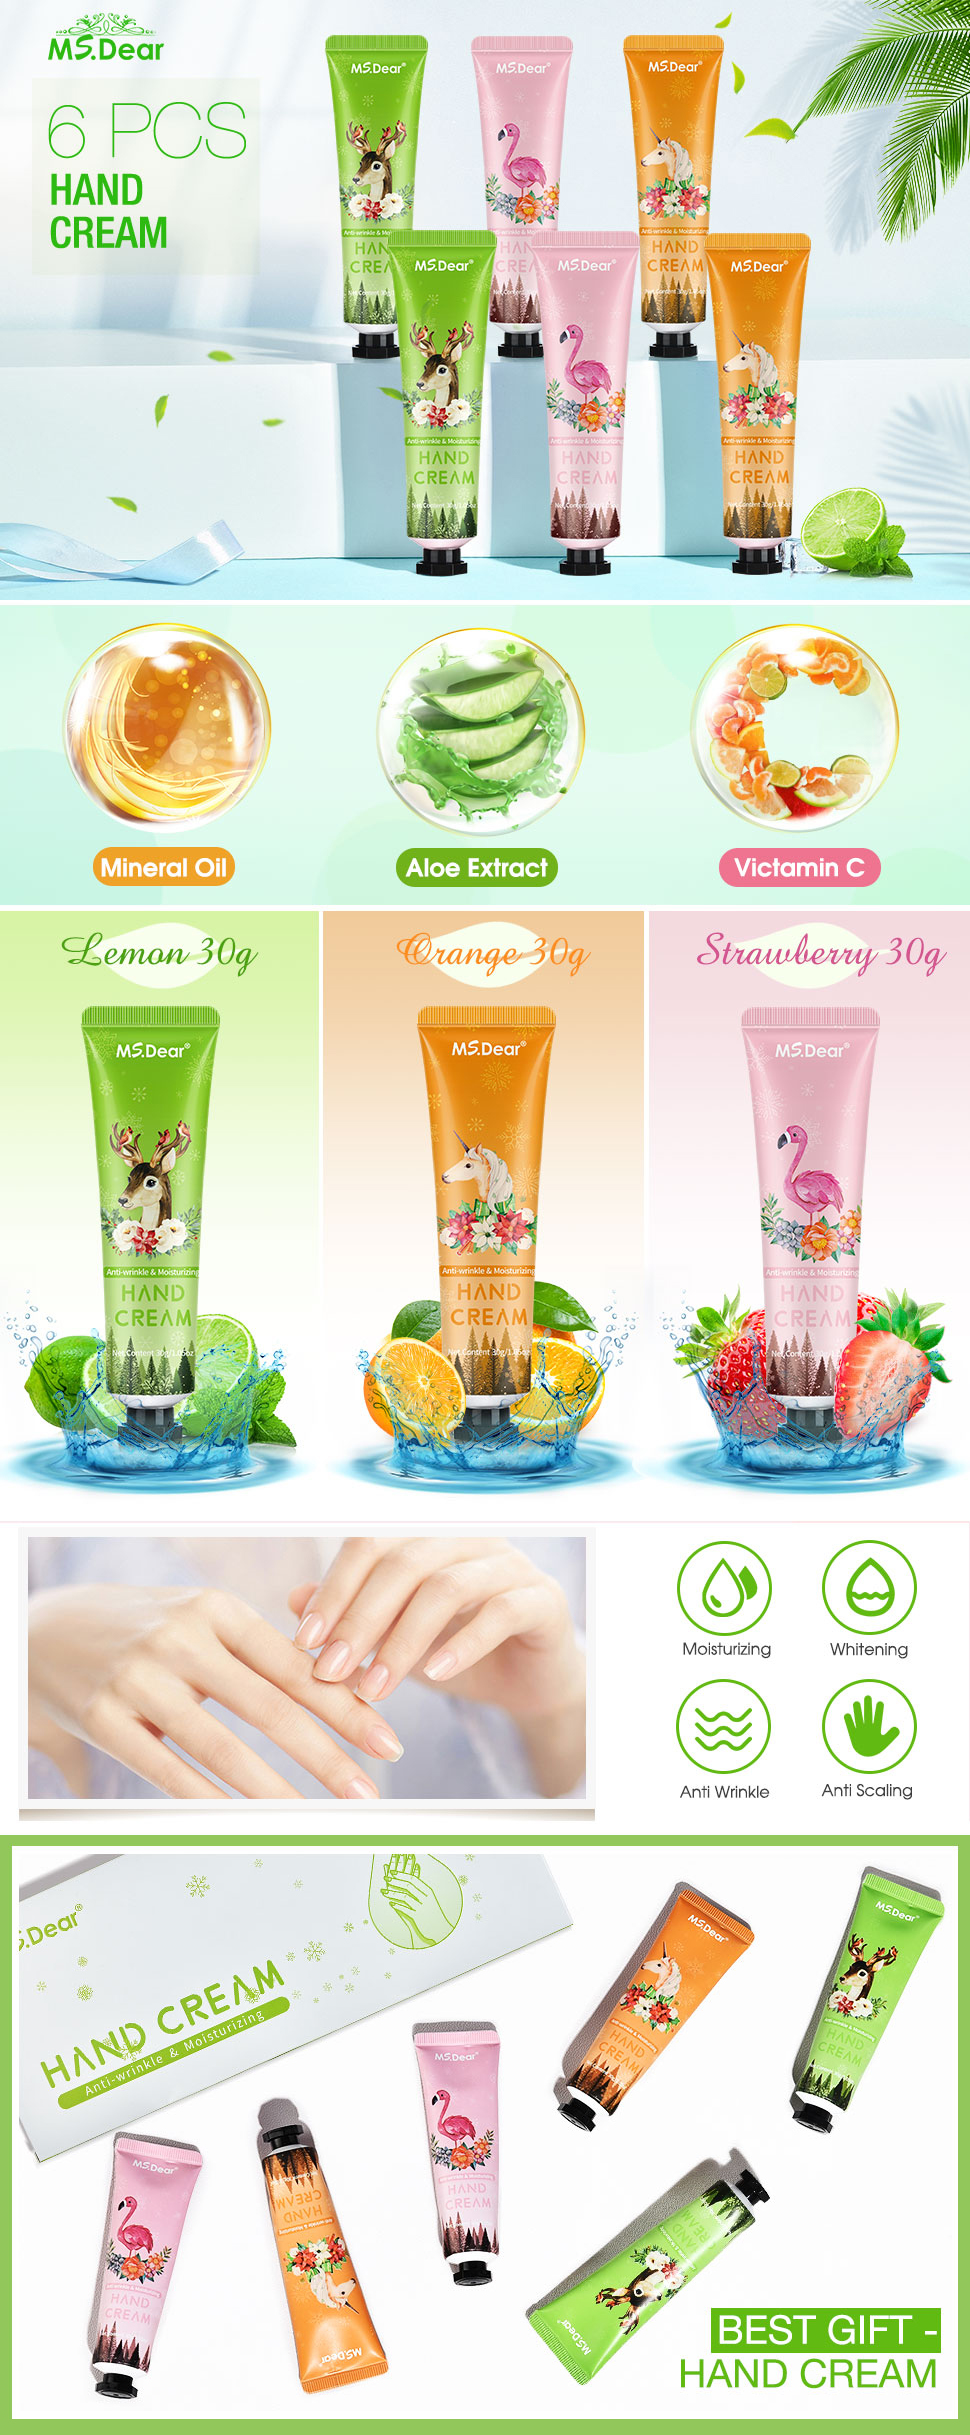 6PCS/set Moisturizing Hand Cream Anti Wrinkle Lemon Mineral Oil Fruit Extracts Nature Healthy Skin Whitening Hand Care Creams